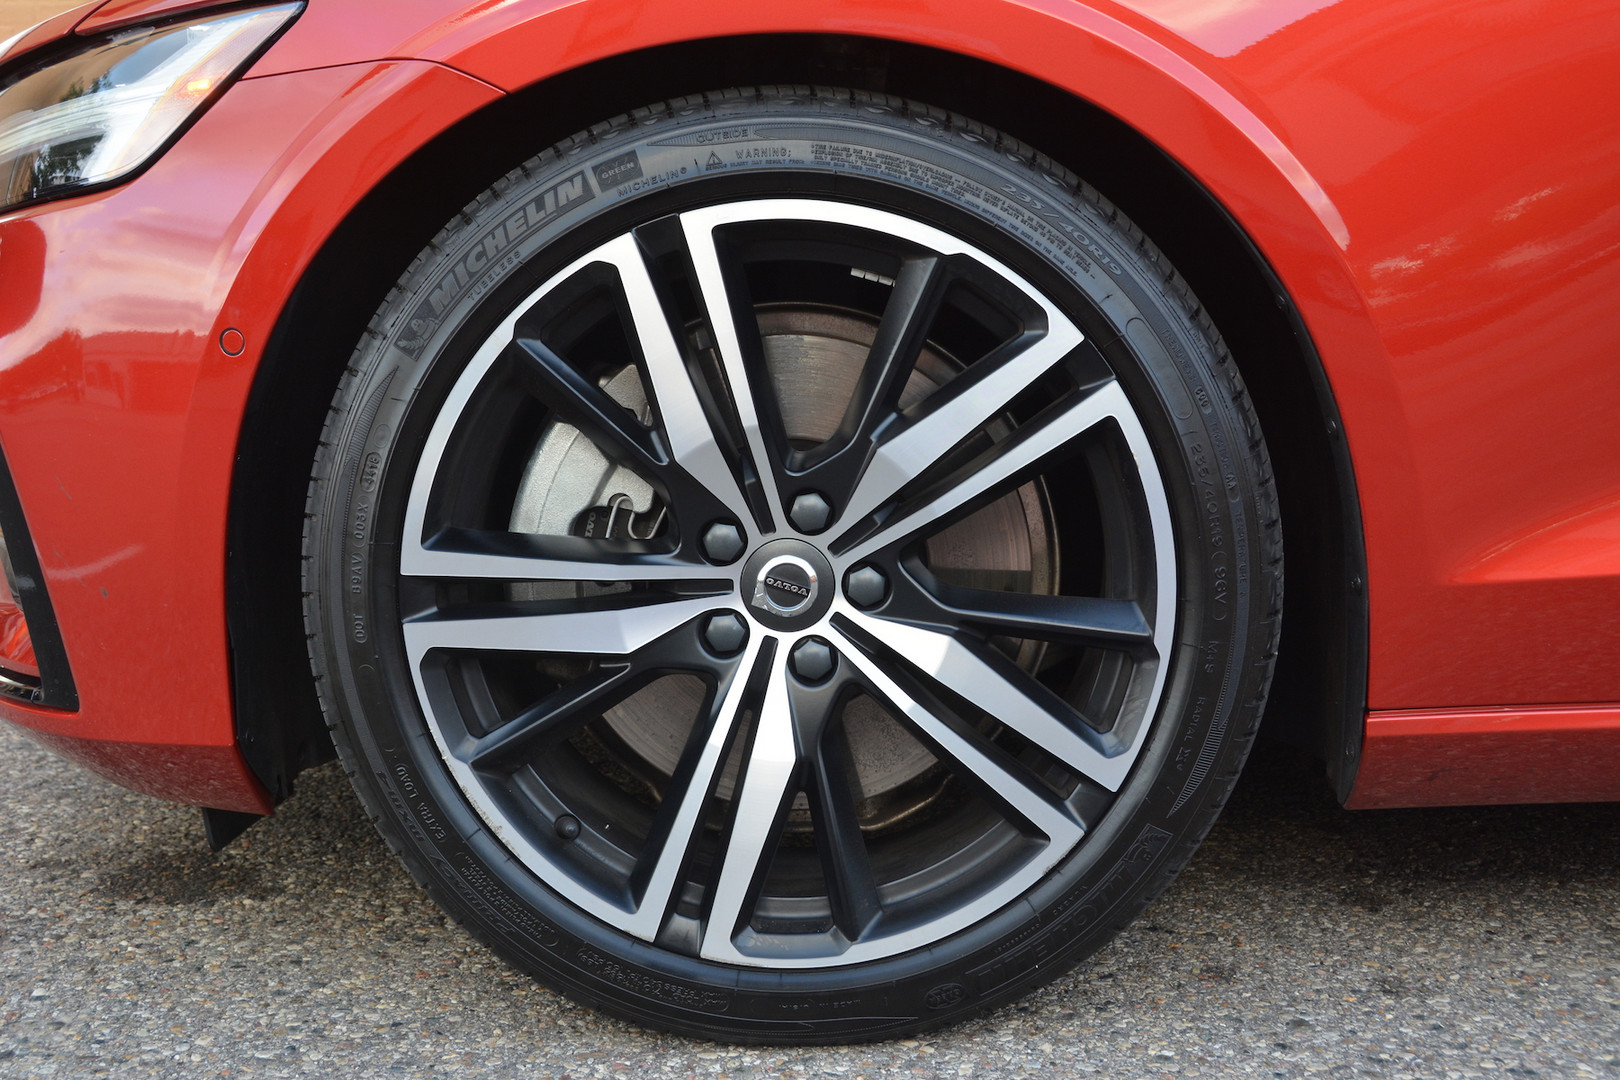 2019 Volvo S60 Wheels